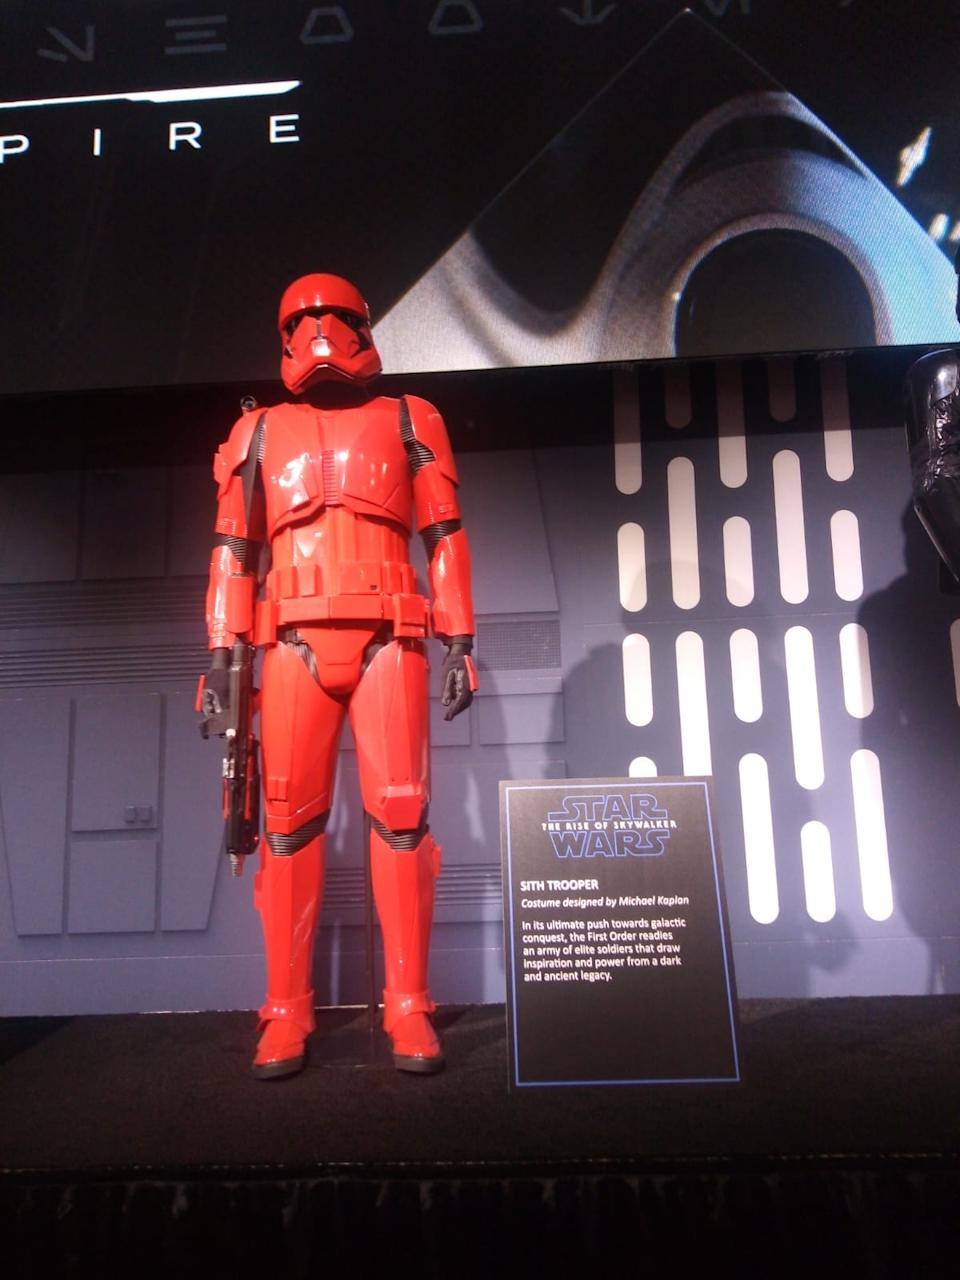 The Sith Trooper will debut in The Rise Of Skywalker